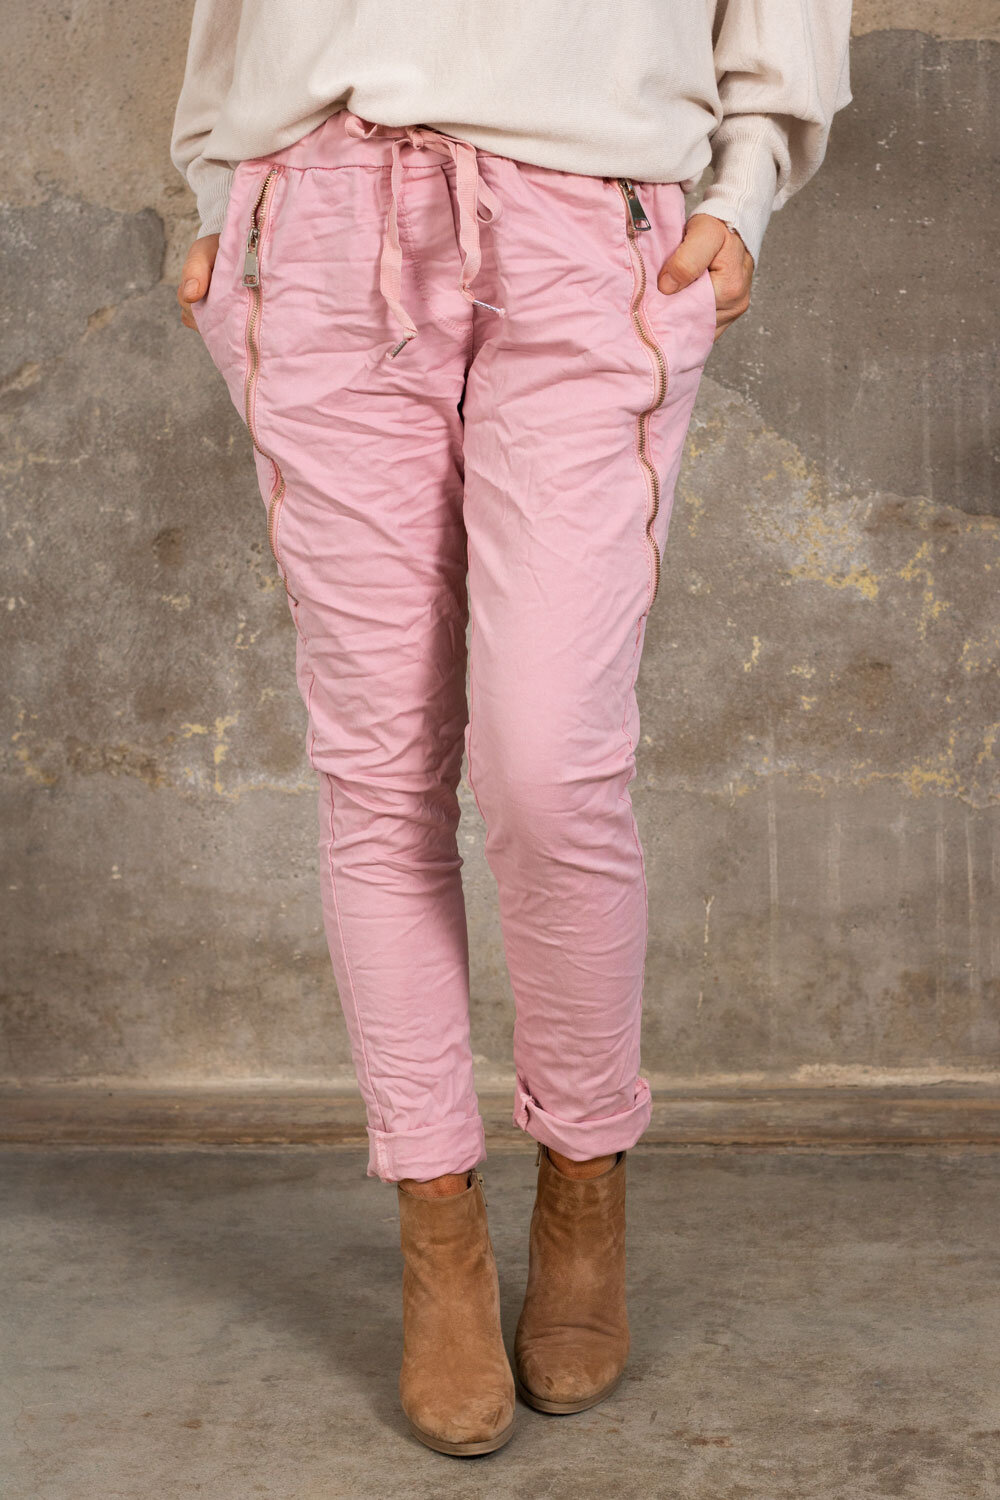 Pants with zippers - Pink